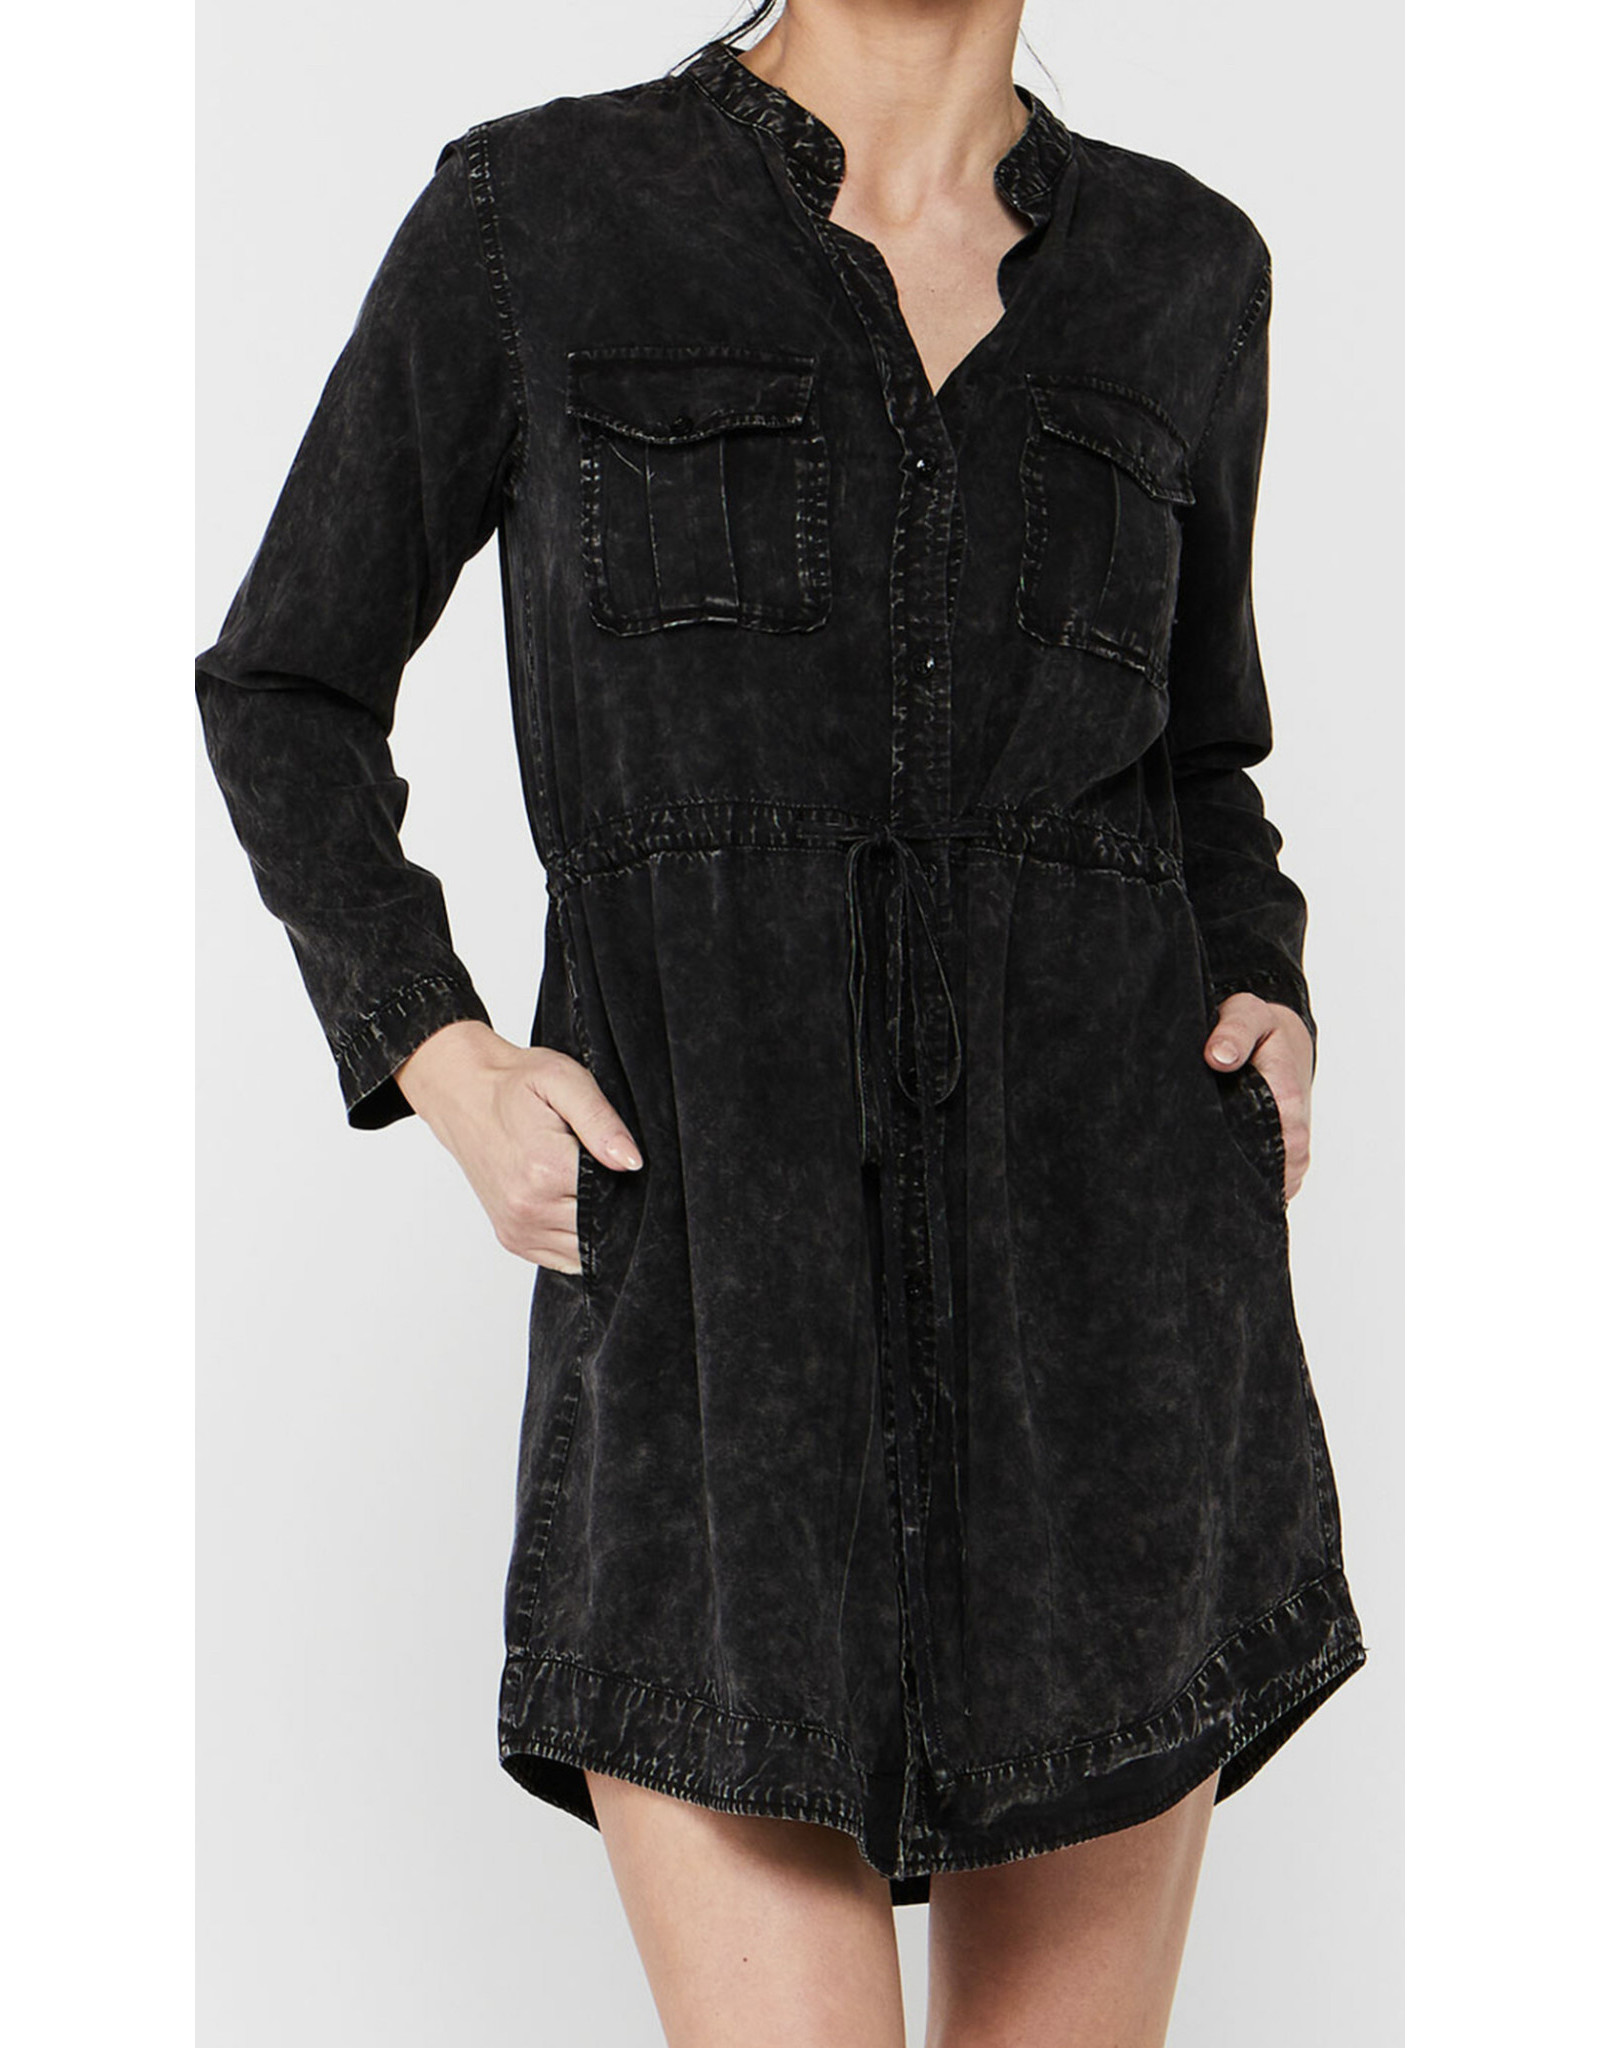 MINERAL WASH BUTTON FRONT DRESS